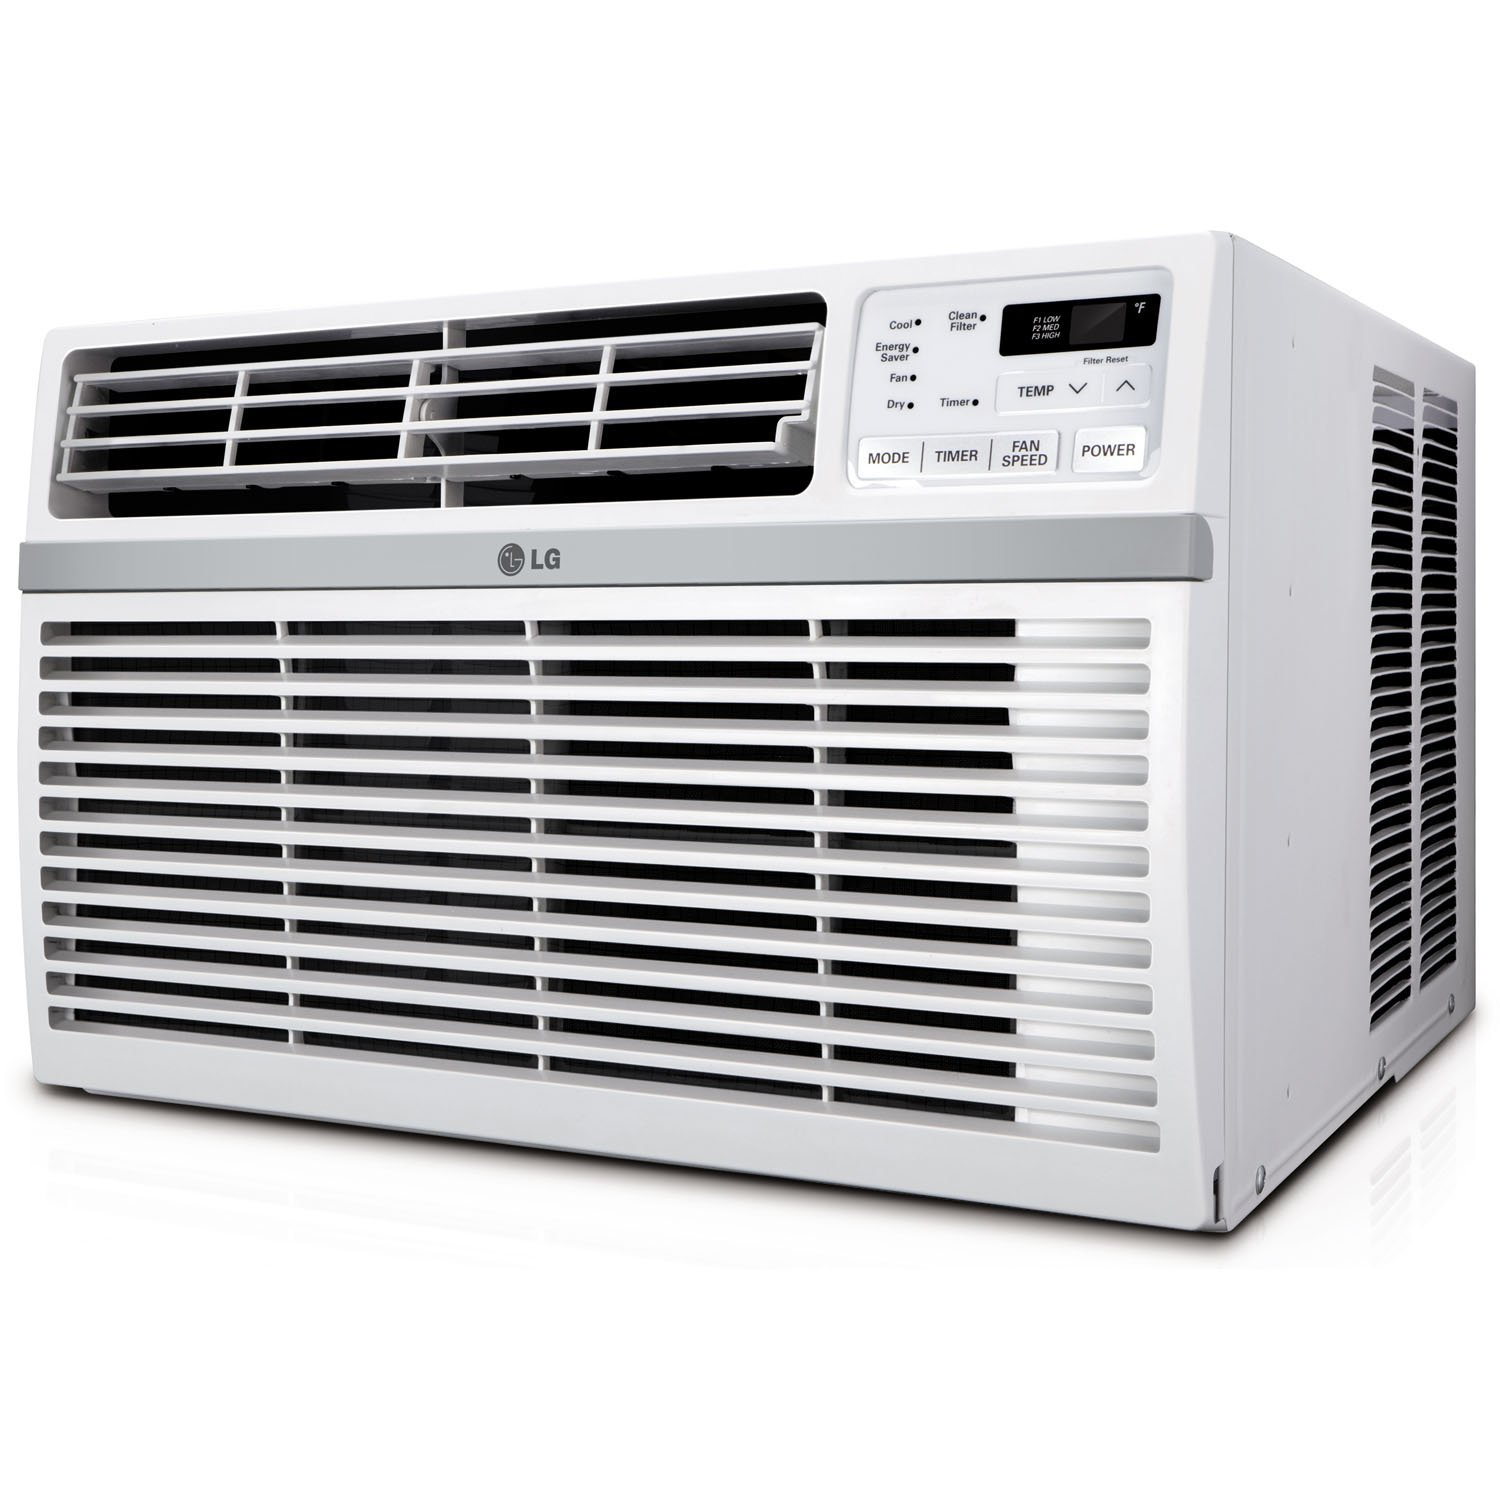 LG 18,000 BTU 230-Volt Window Air Conditioner with Remote, Factory Reconditioned